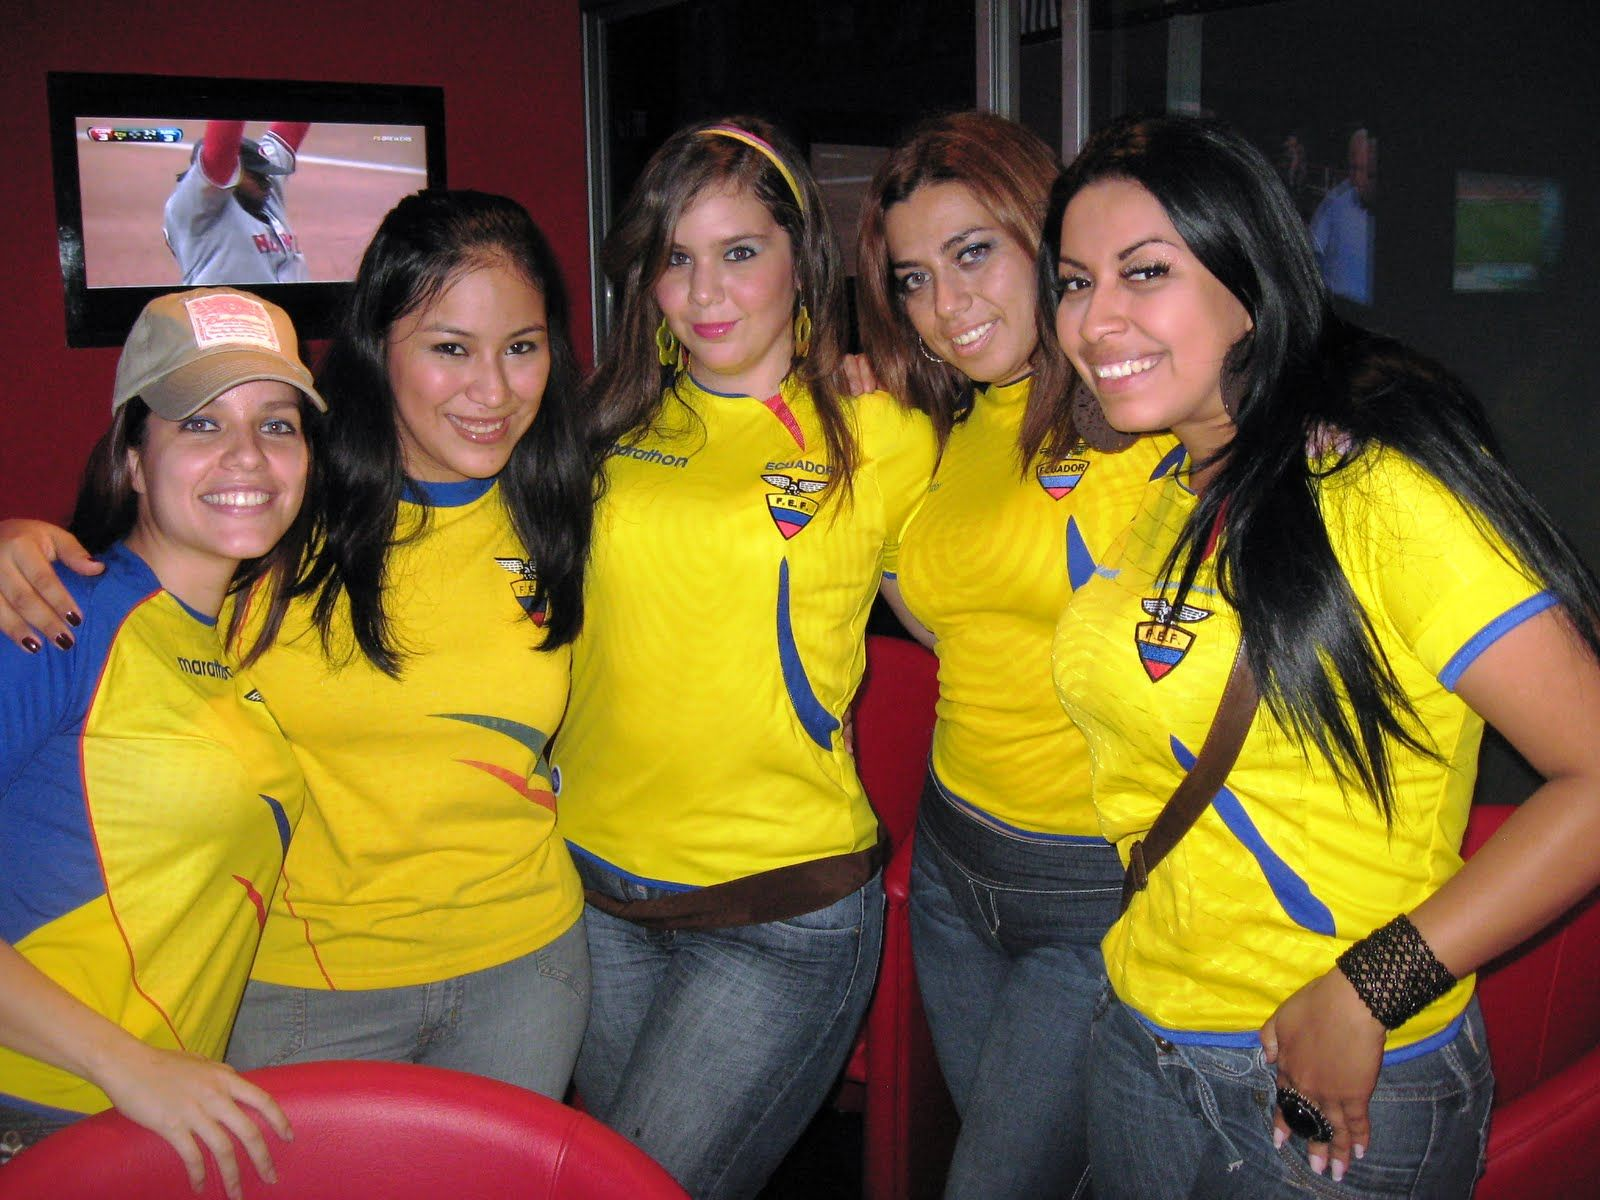 ecuadorian dating site Ecuadorian women - welcome to our online dating site where you could find potential matches according to your location sign up and start chatting online for free a niche dating online service is a good option if you want to meet someone with an interest or a particular perspective on life.